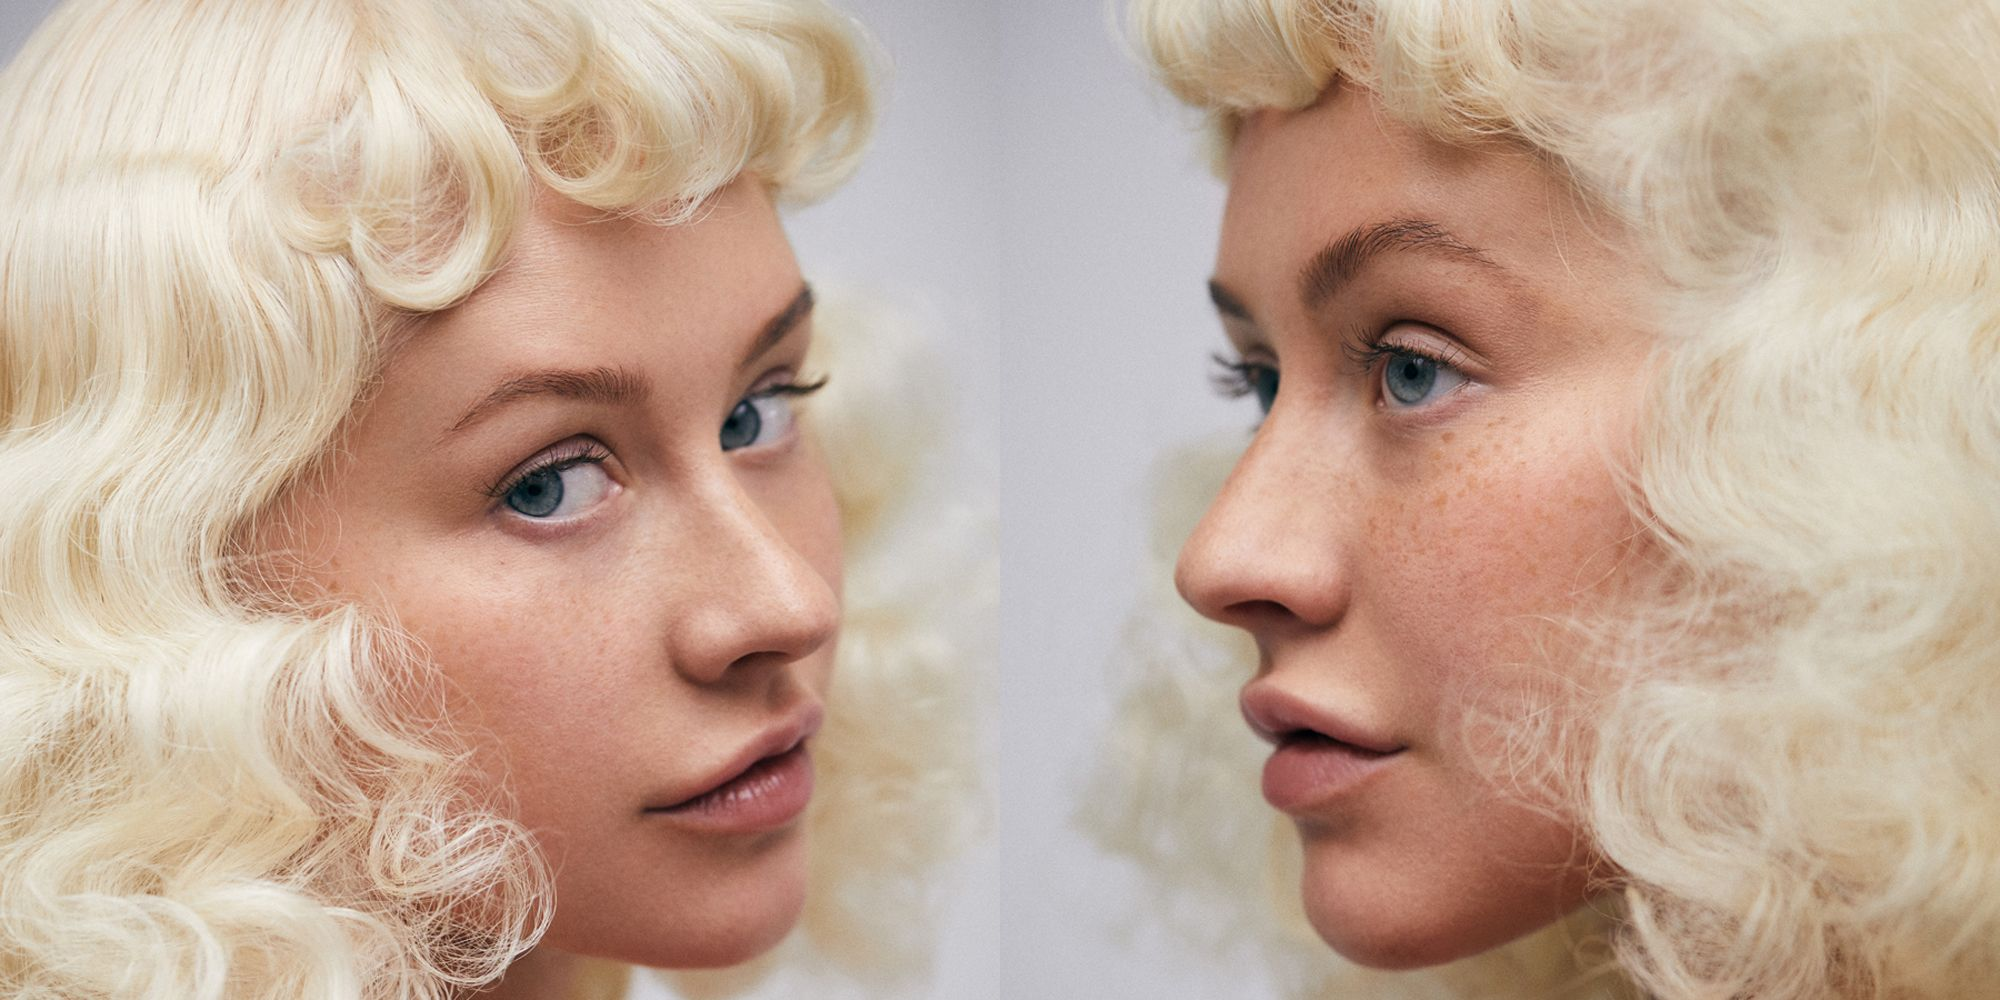 Christina Aguilera Did a Makeup-Free Photo Shoot, and She Looks Stunning